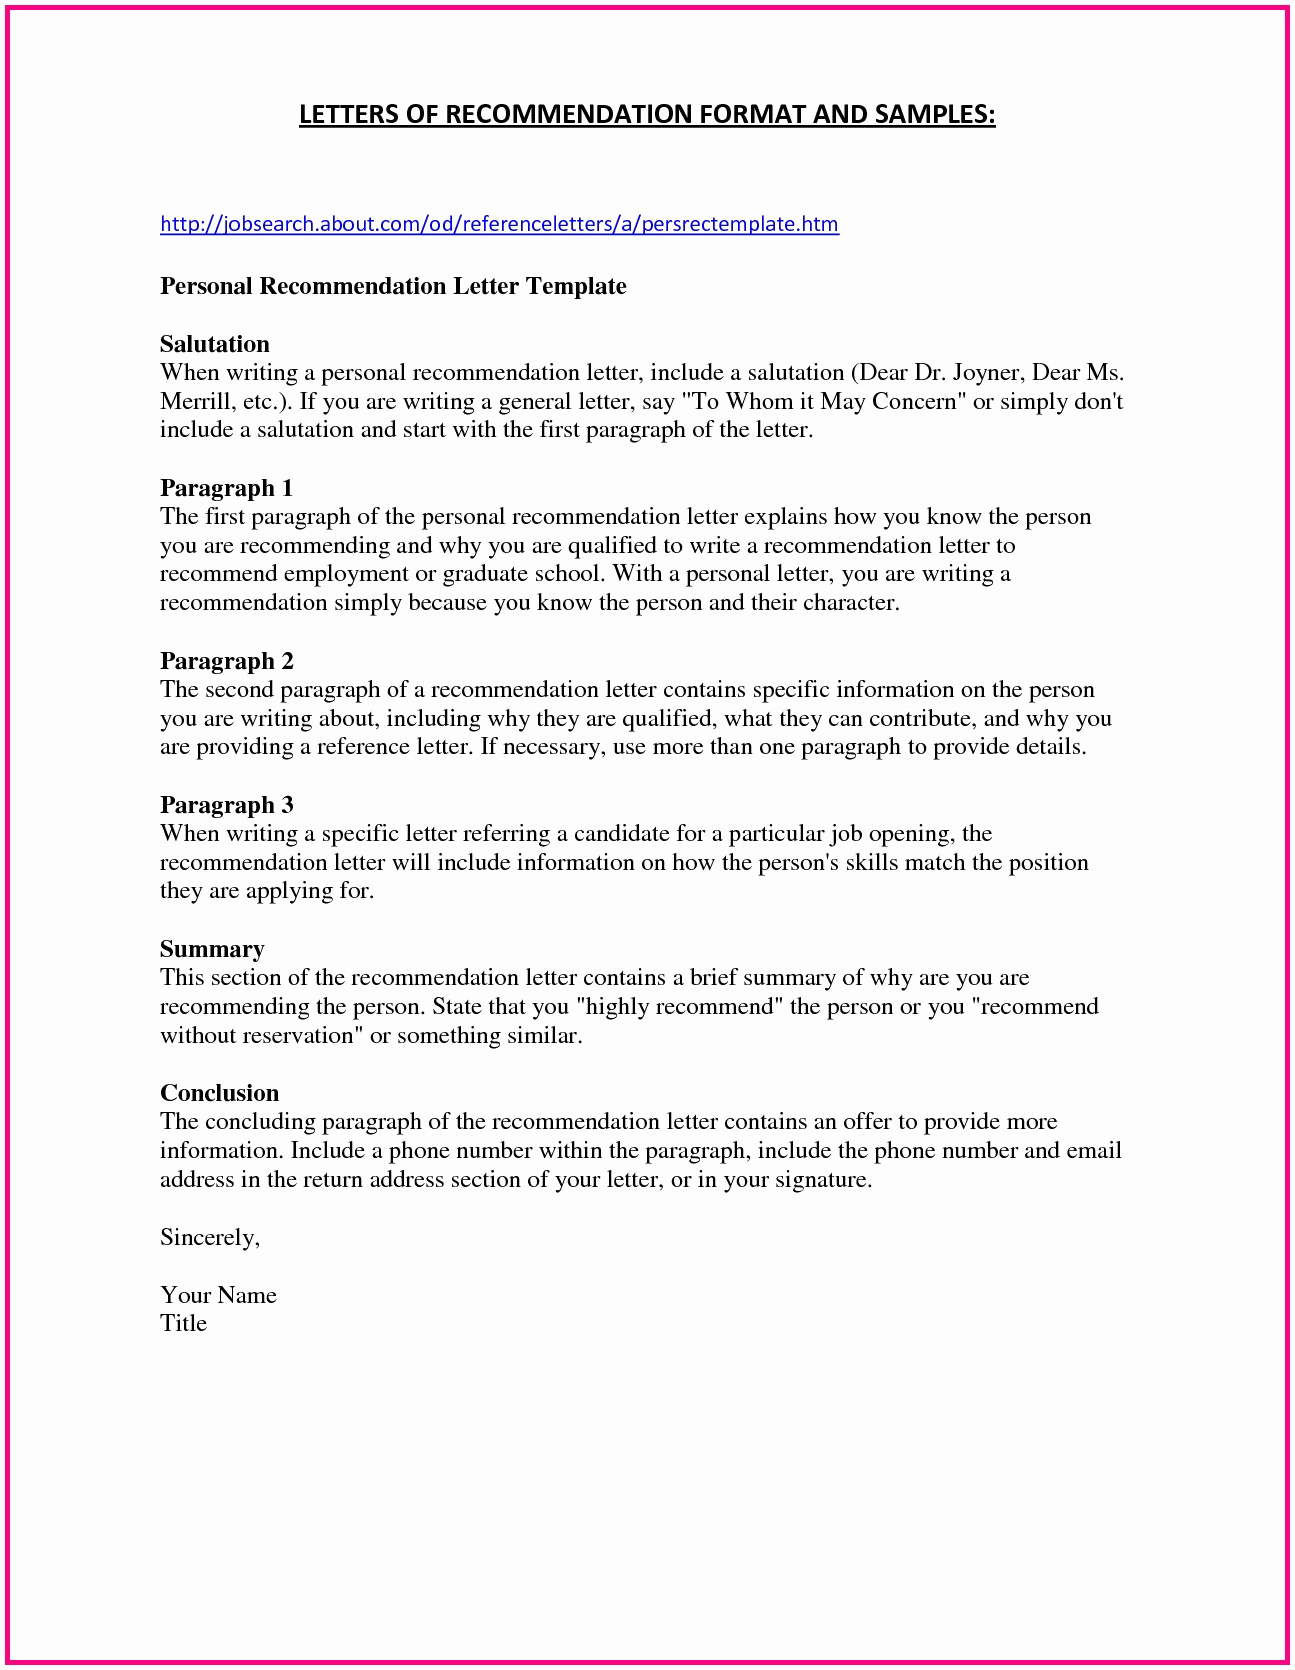 disability letter from doctor template example-Sample Disability Letter From Doctor Elegant Va Disability Letter Sample Luxury Sample Disability Letter From 10-g